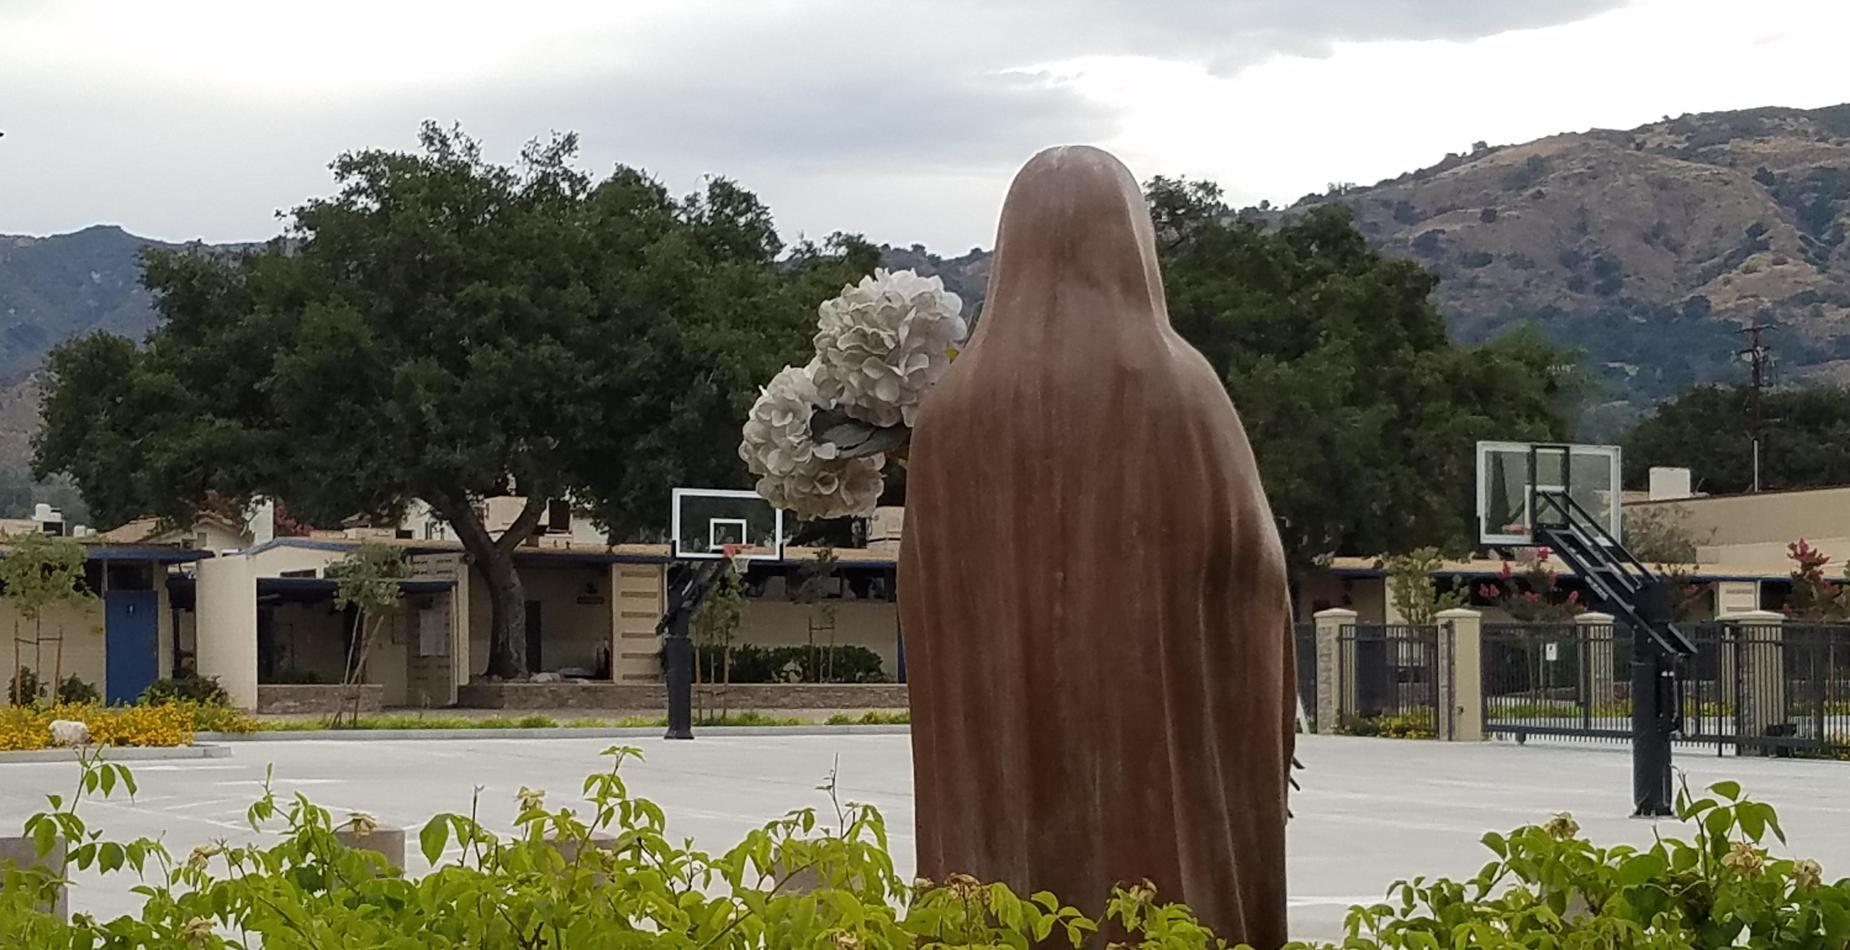 Mary facing the Foothills of Glendora